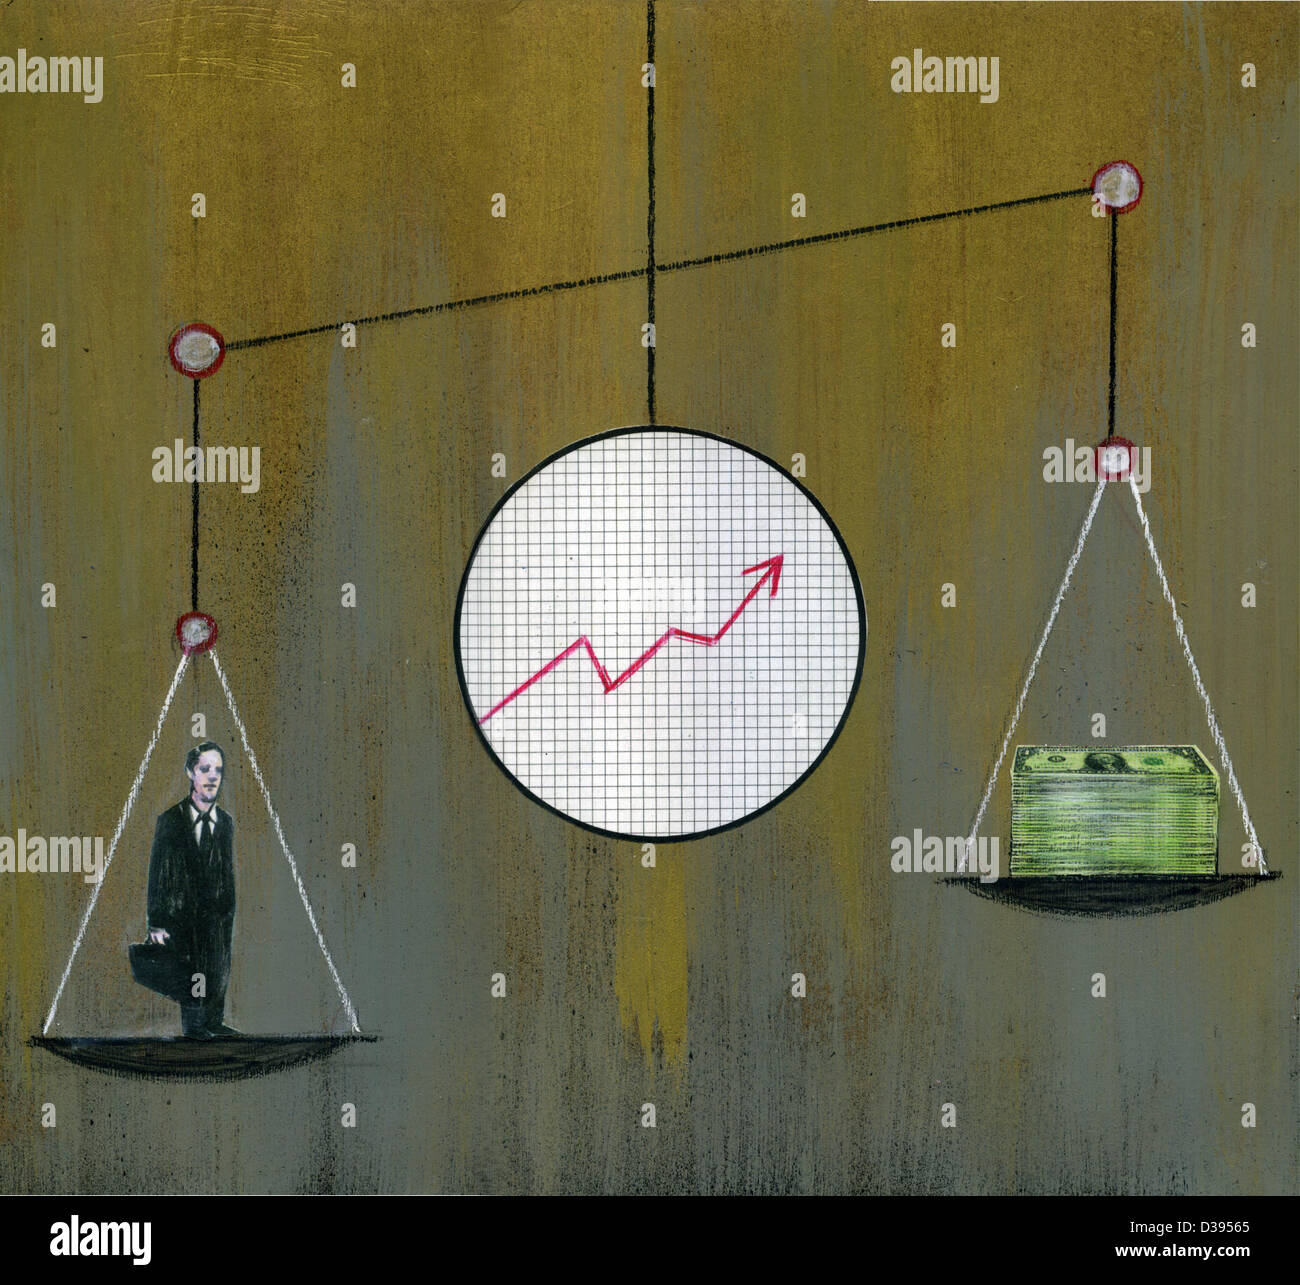 Illustration of inflation - Stock Image